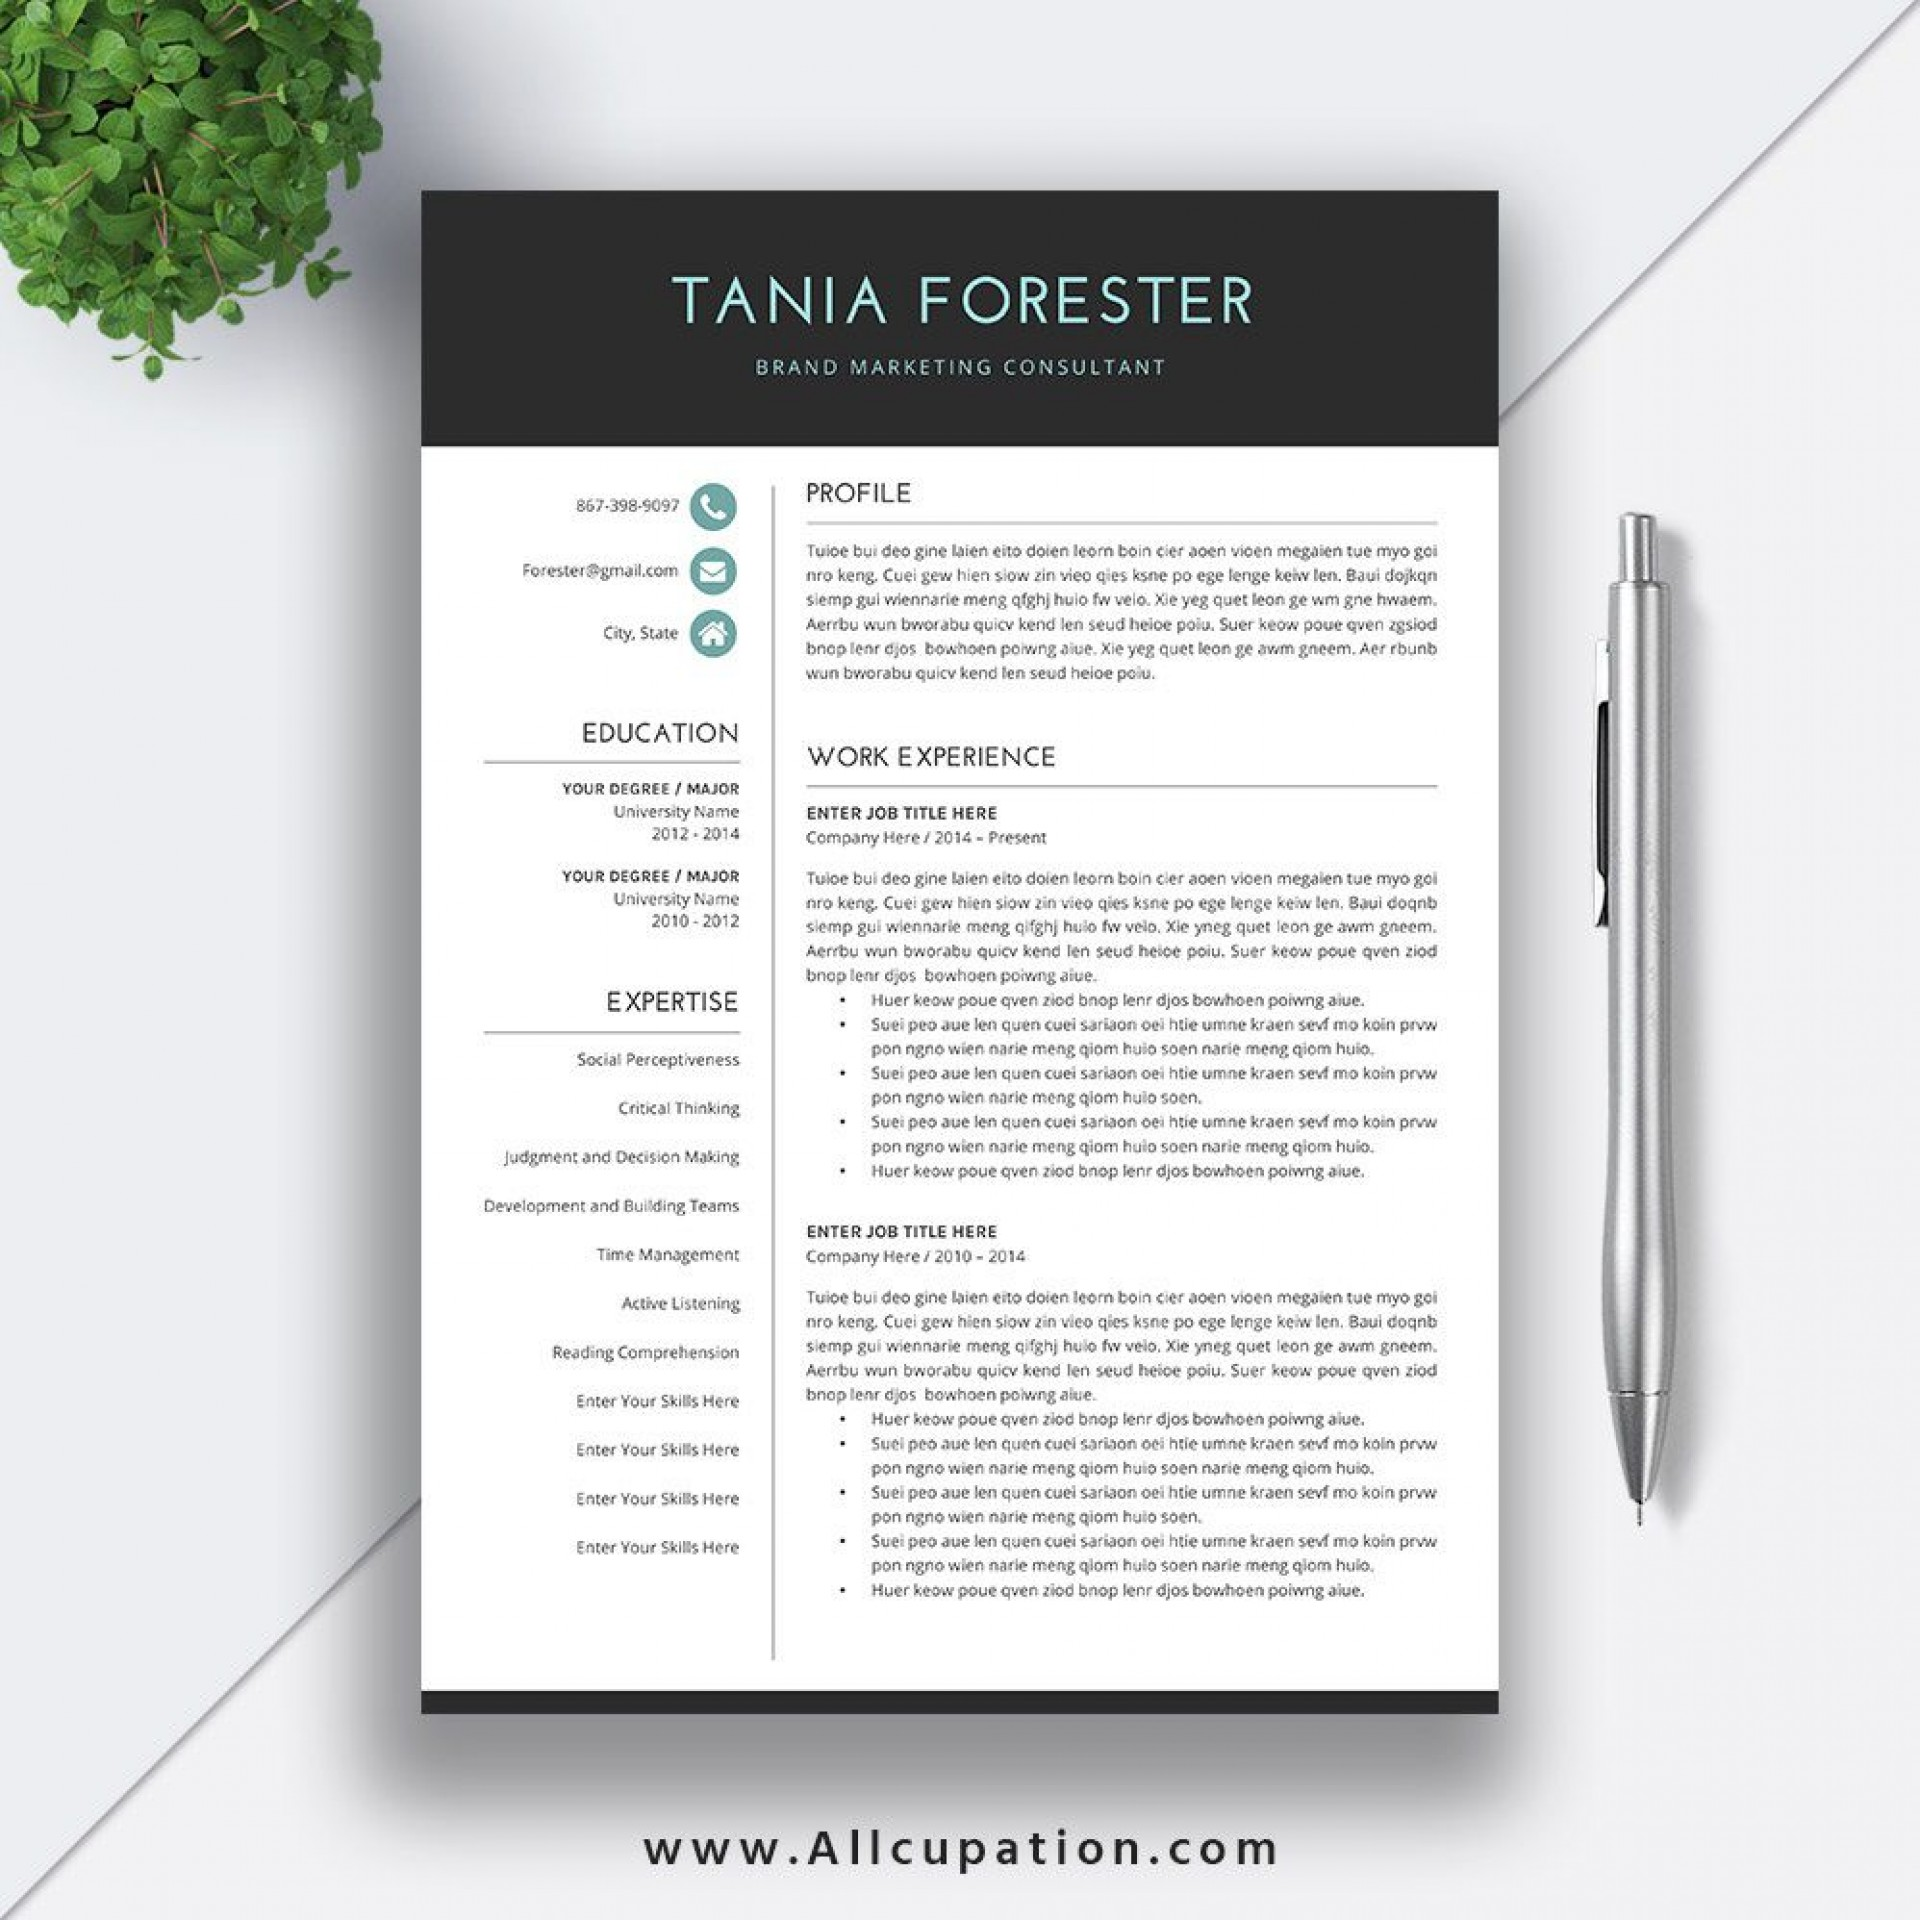 009 Incredible Resume Template Download Word Concept  Cv Free 2018 2007 Document For Fresher1920